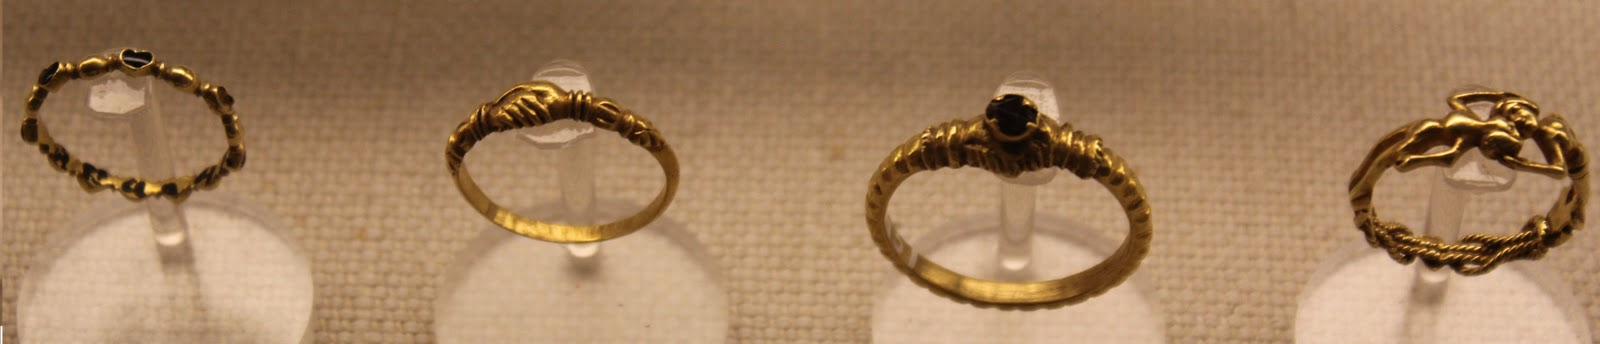 i love the one on the right with the man and the woman holding eachother the second one from the left features two hands coming together and is a fairly - Medieval Wedding Rings